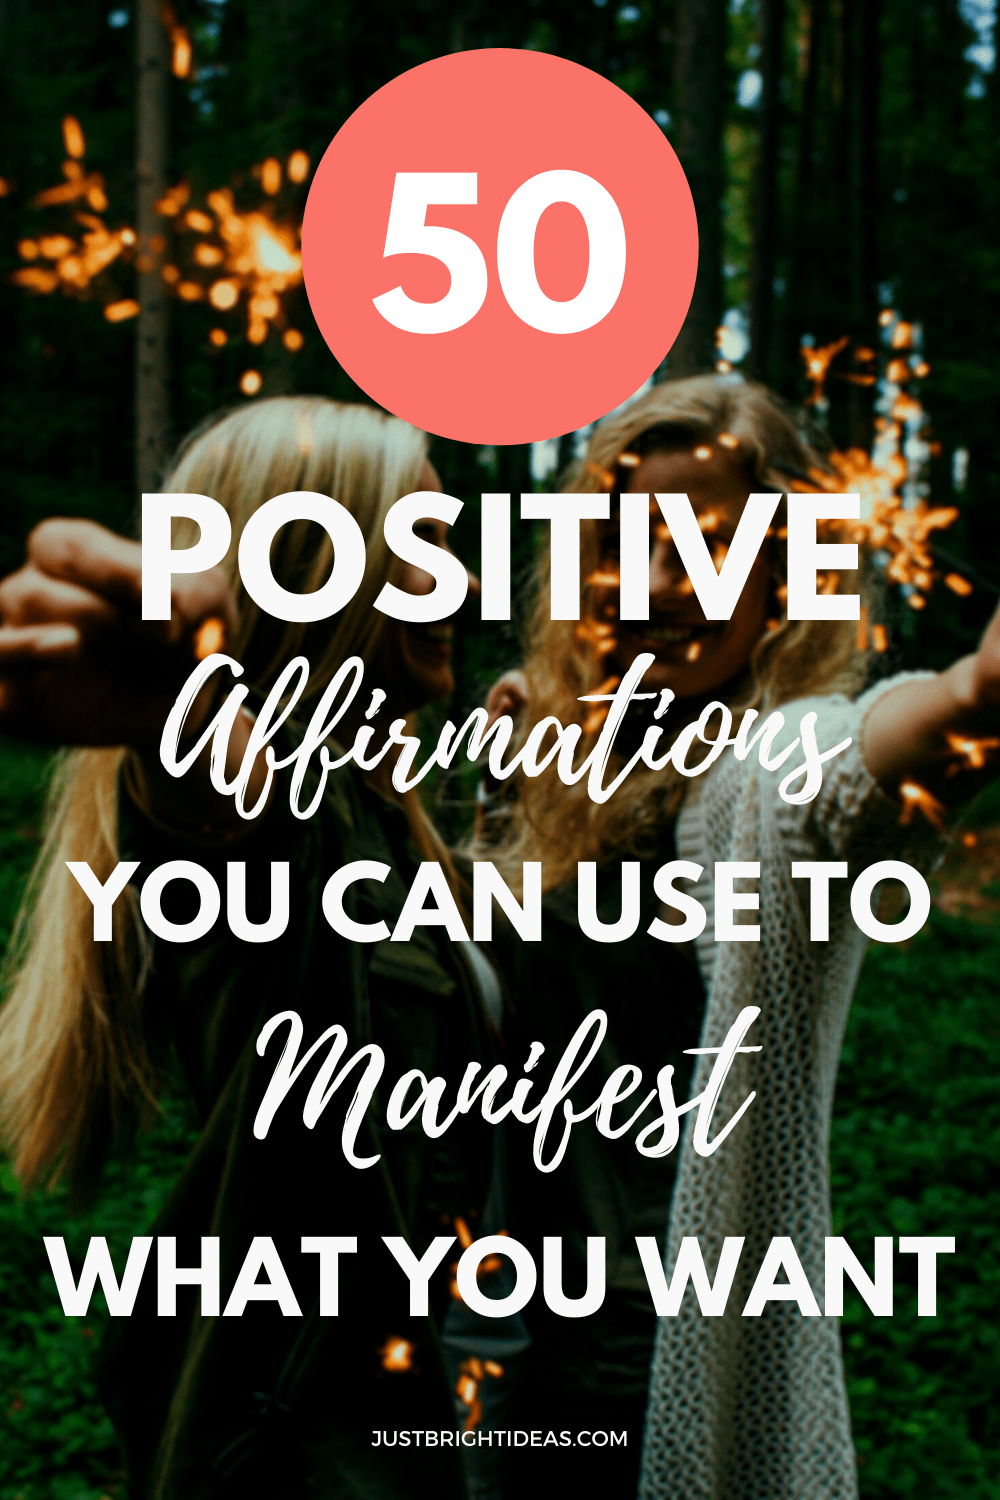 Get your free printable with 50 powerful affirmations you can use in your manifesting rituals - and find out how to write your own affirmations too